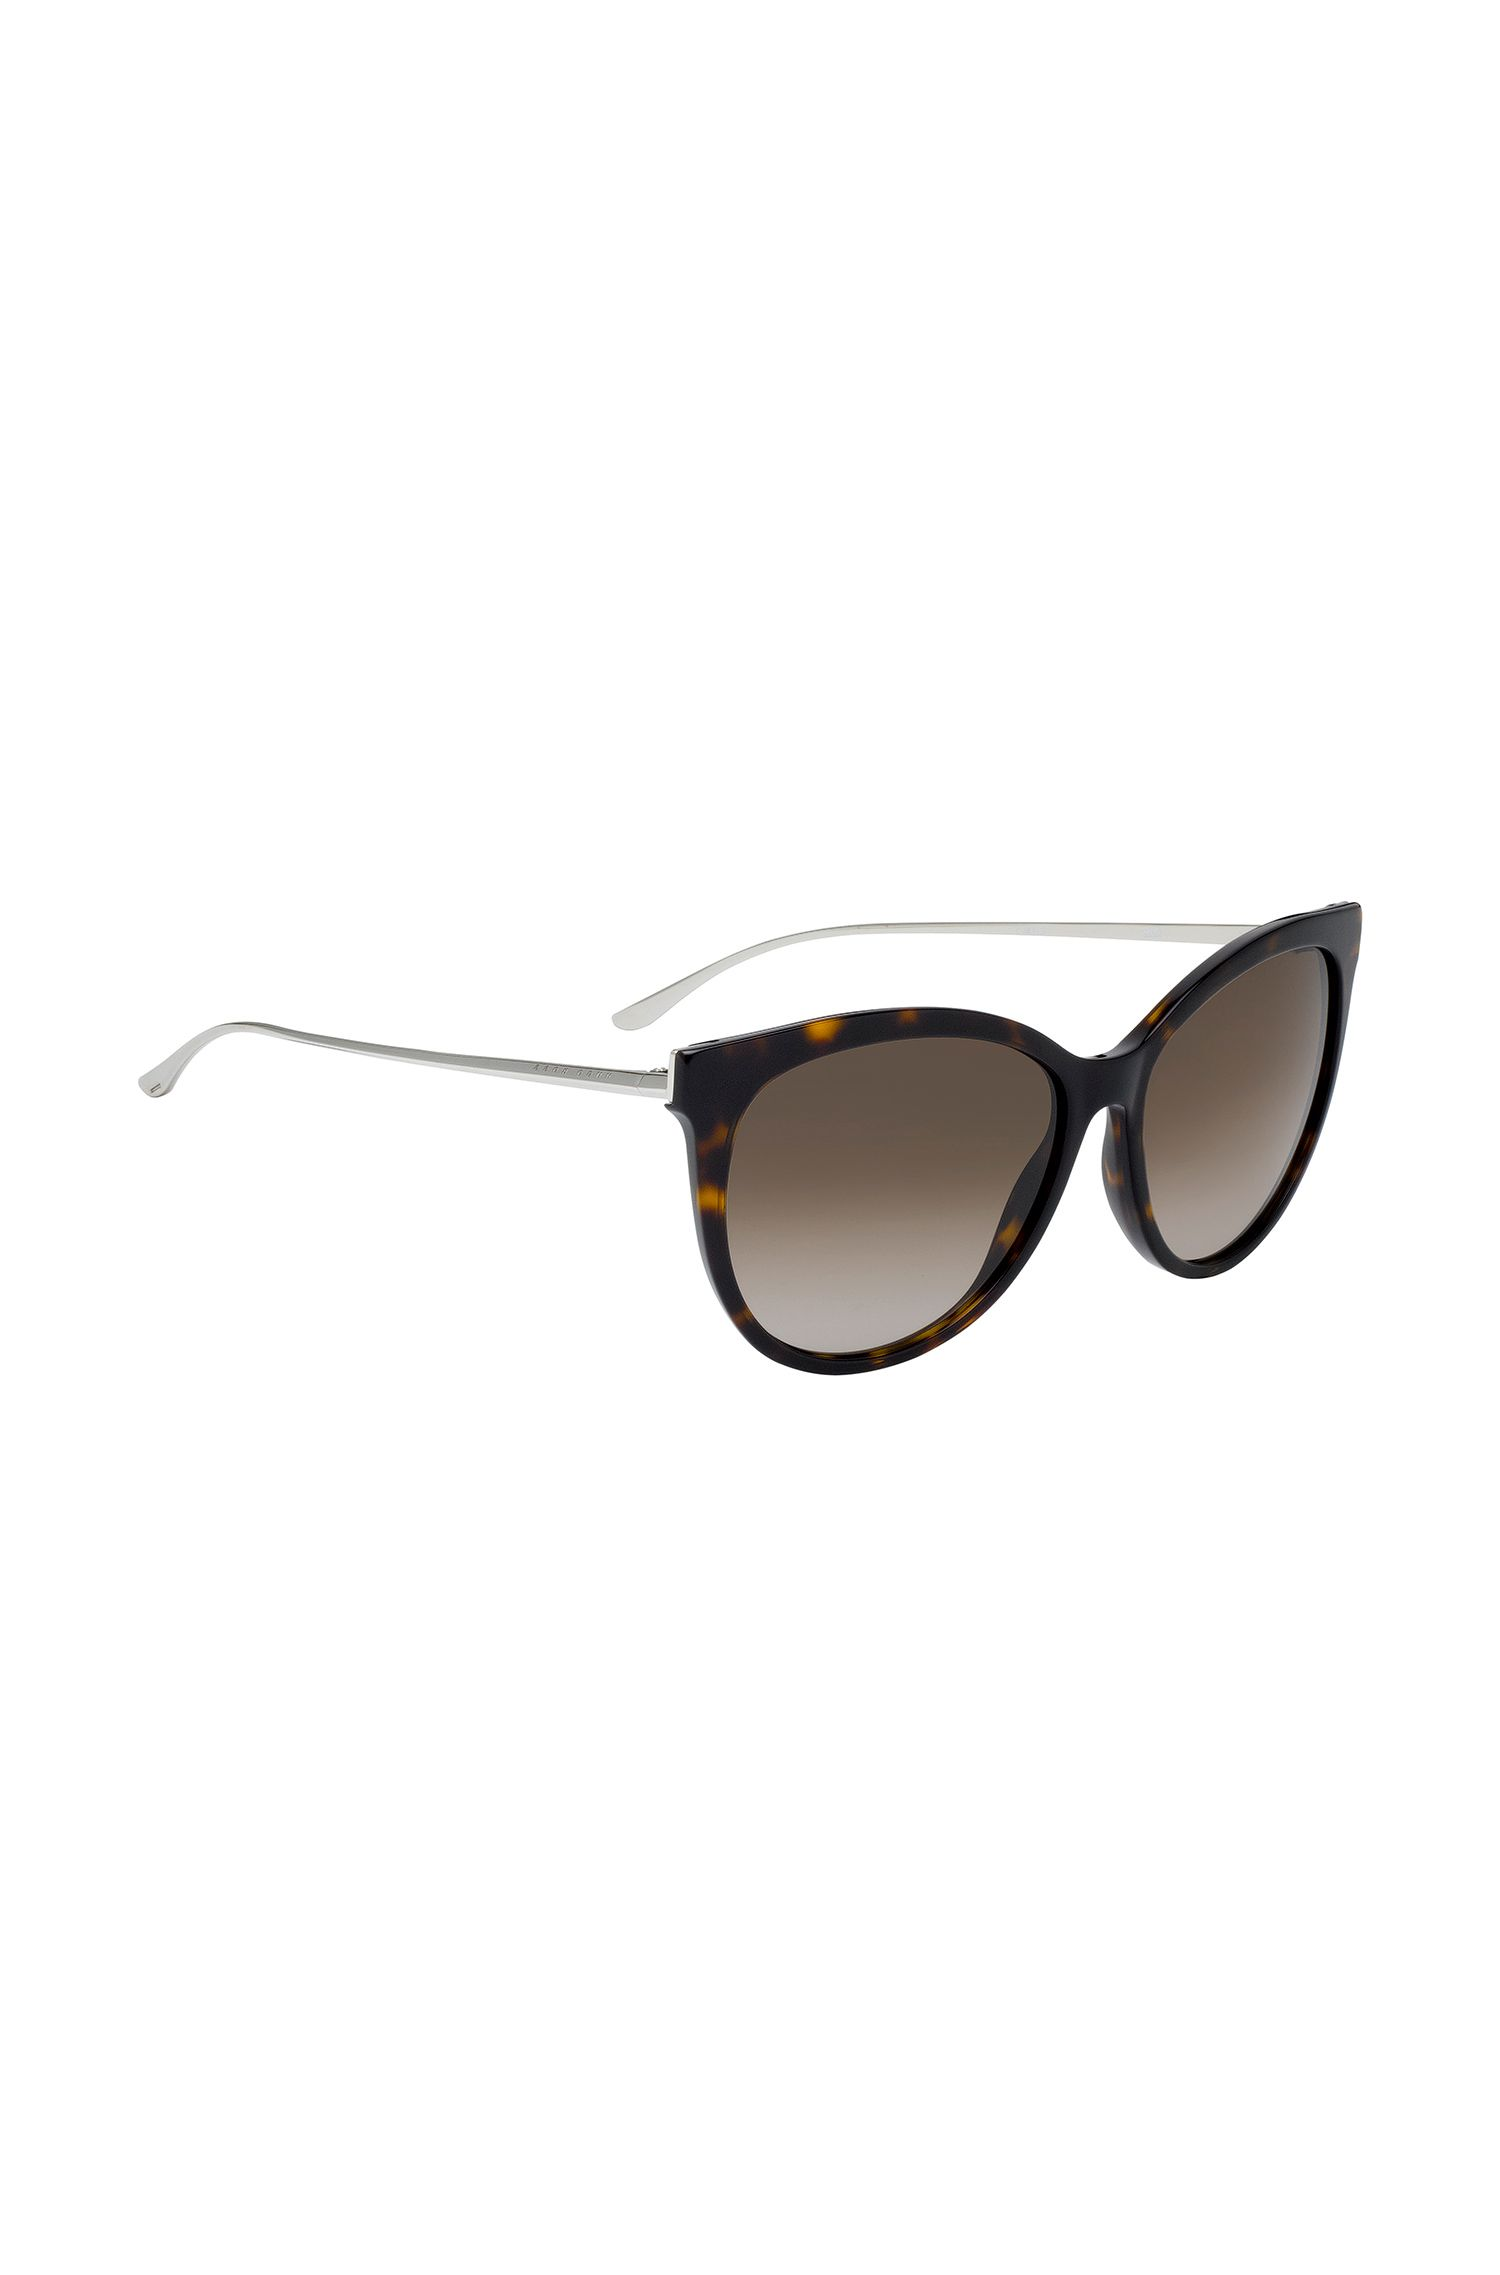 Cat-eye sunglasses with lasered logo